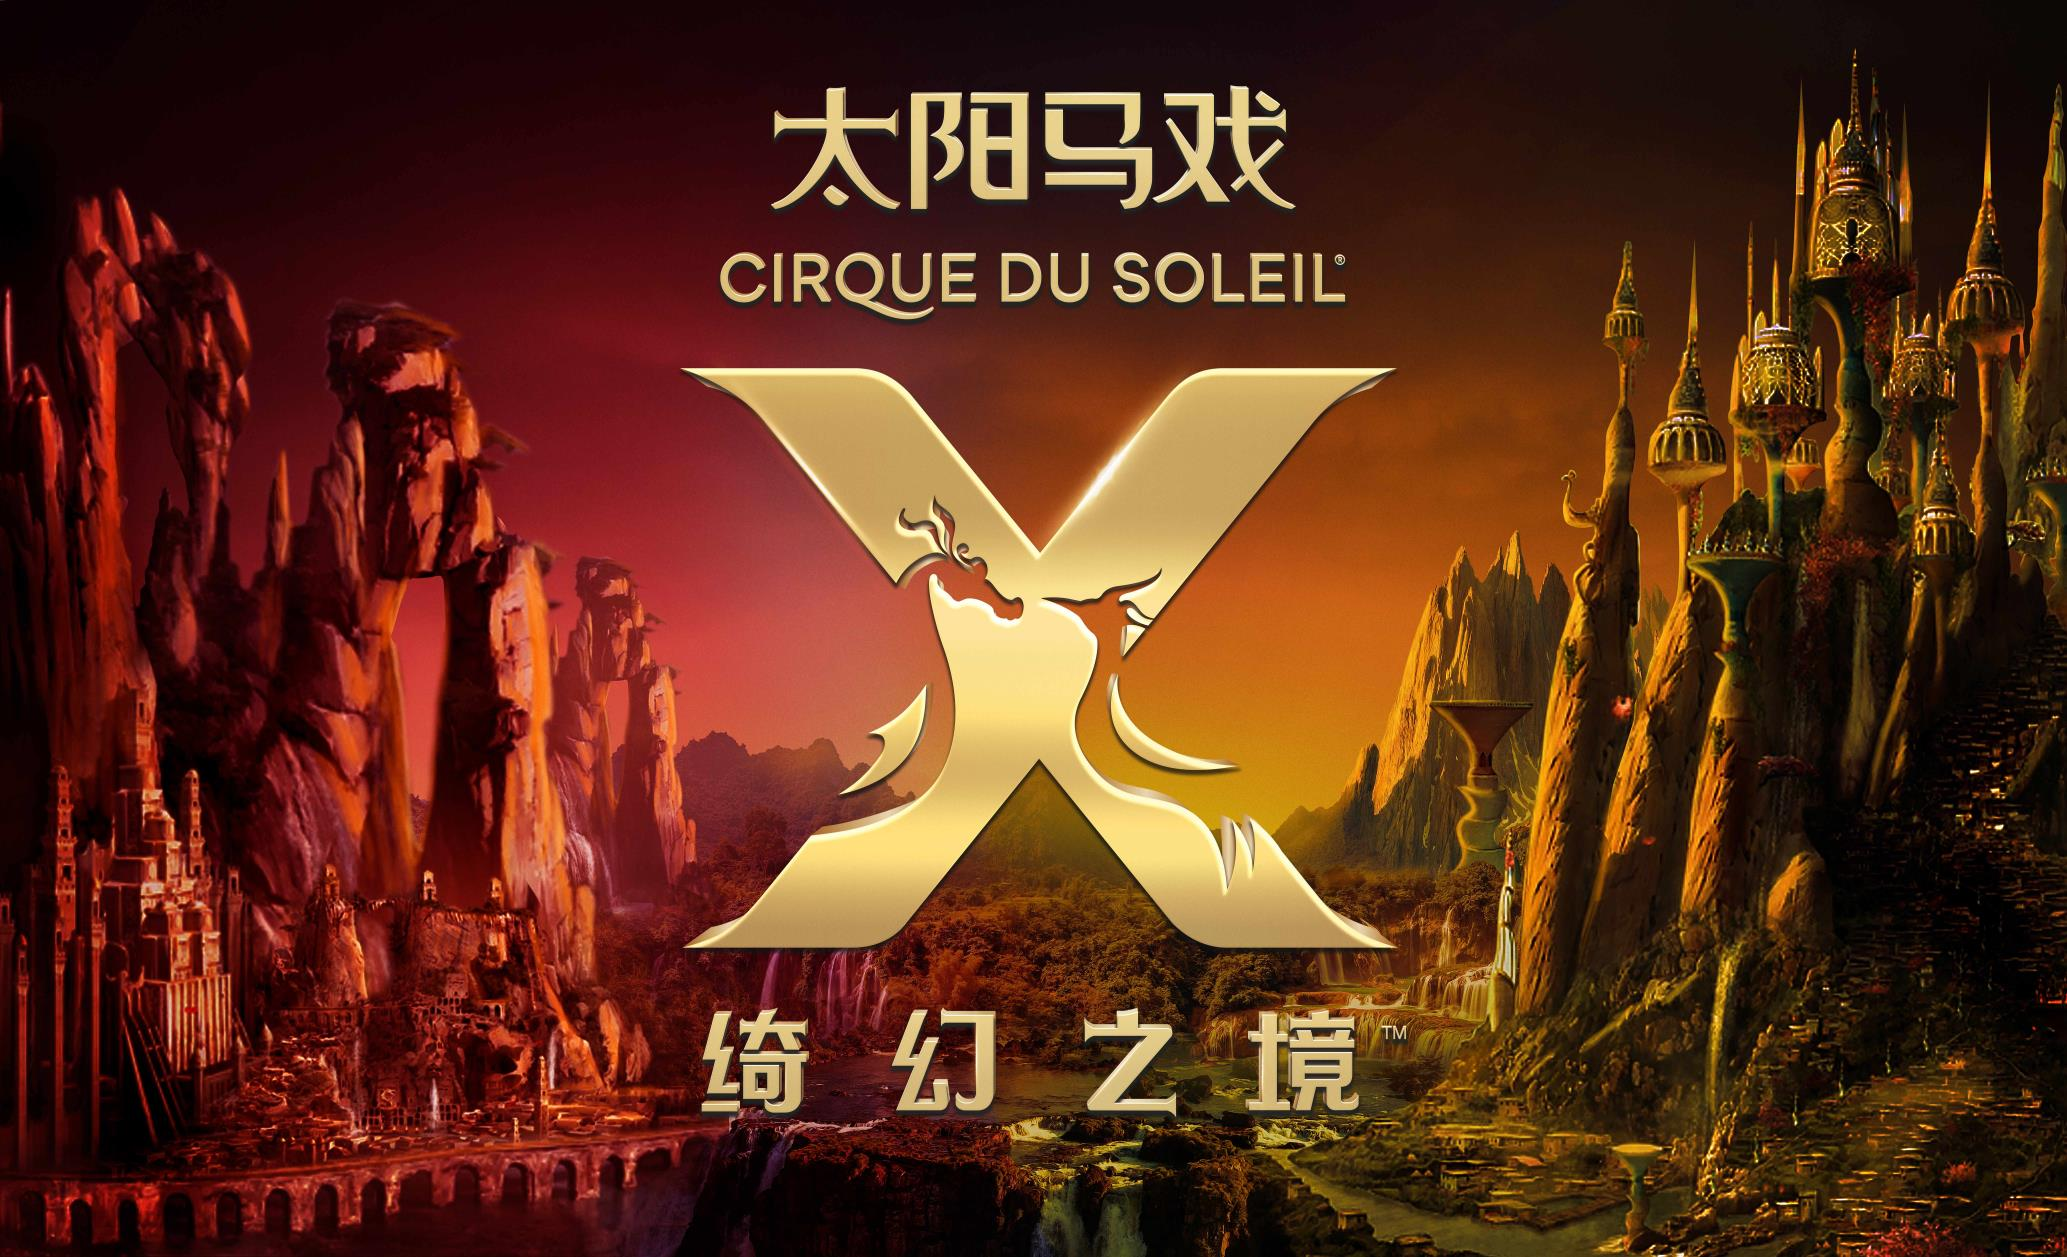 Cirque du Soleil X: the Land of Fantasy Hangzhou Ticket